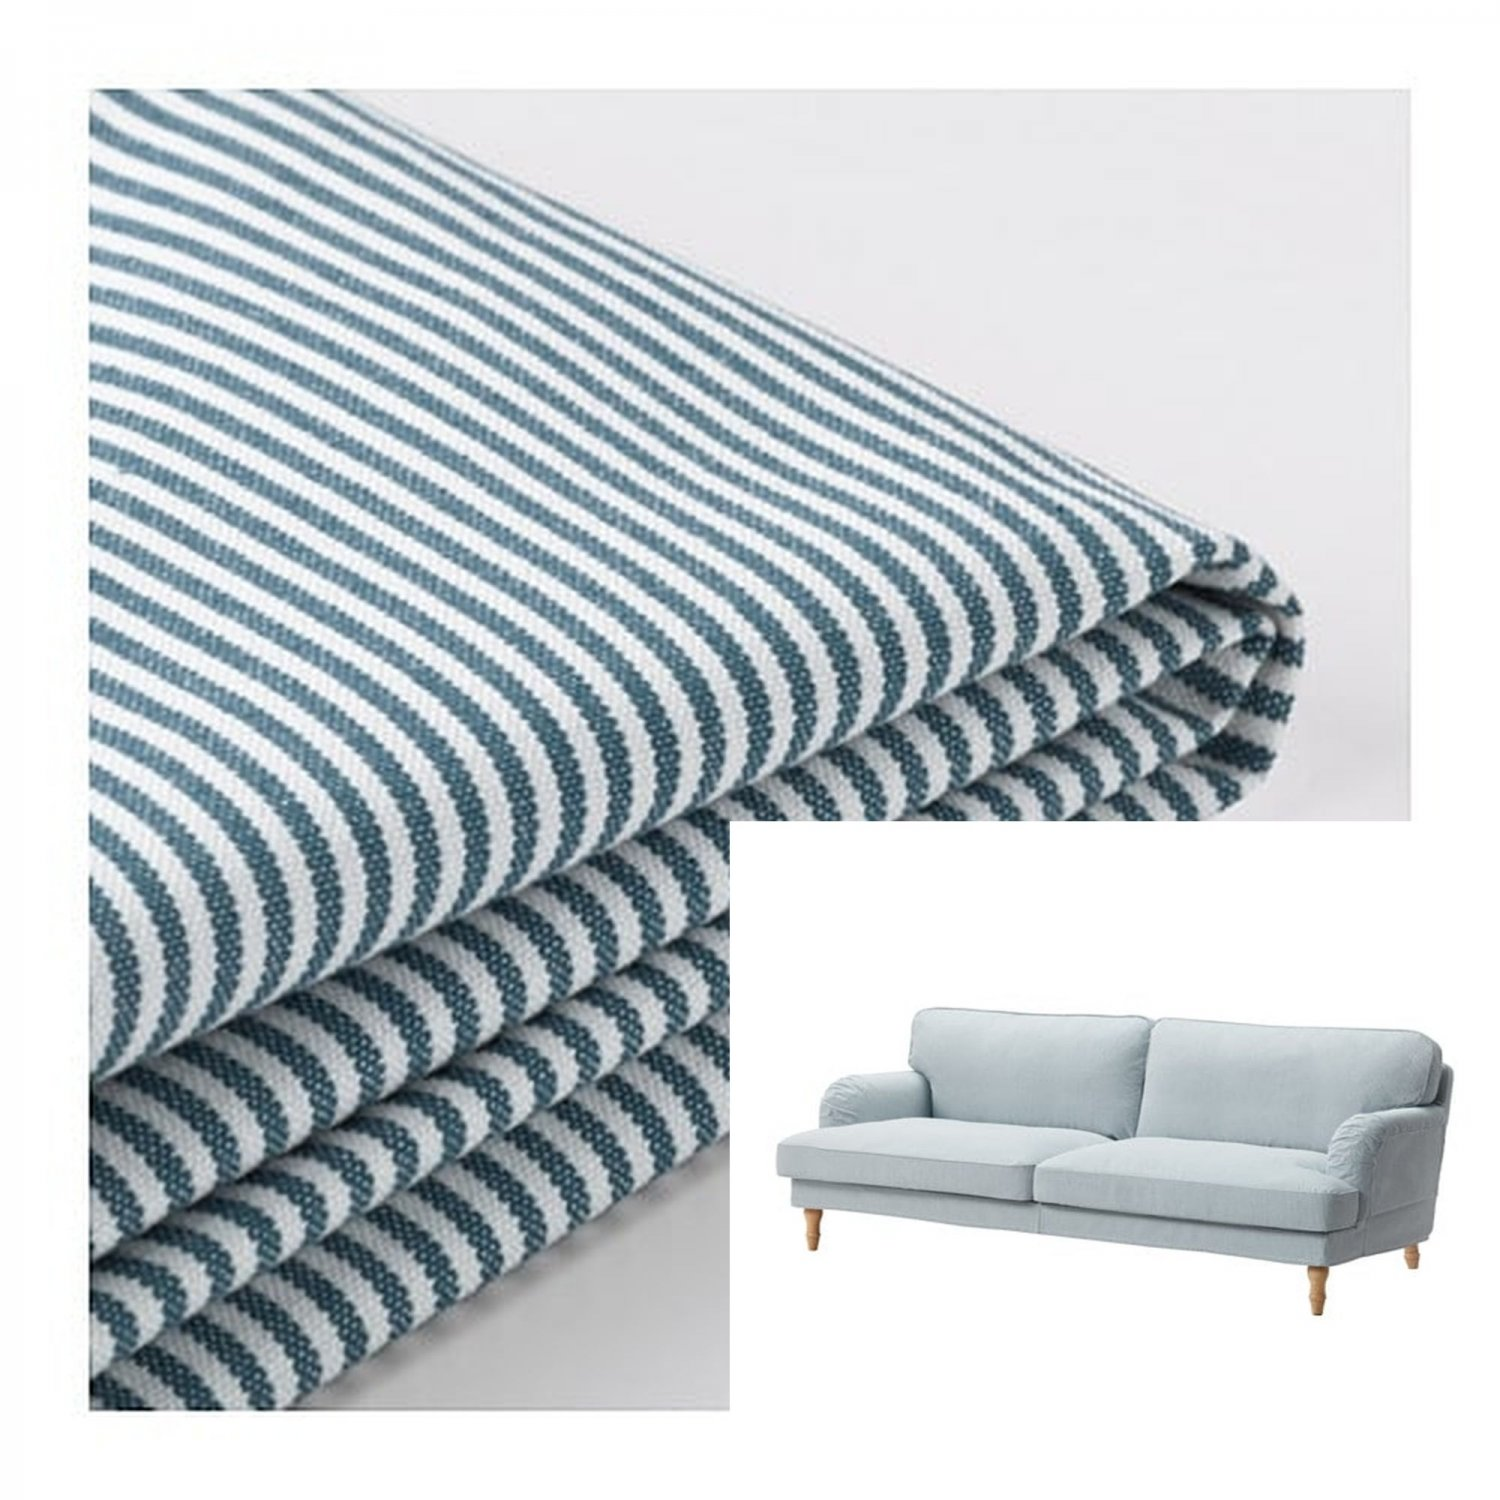 Bettsofa Ikea Blau Ikea Stocksund 3 Seat Sofa Slipcover Cover Remvallen Blue White Stripes